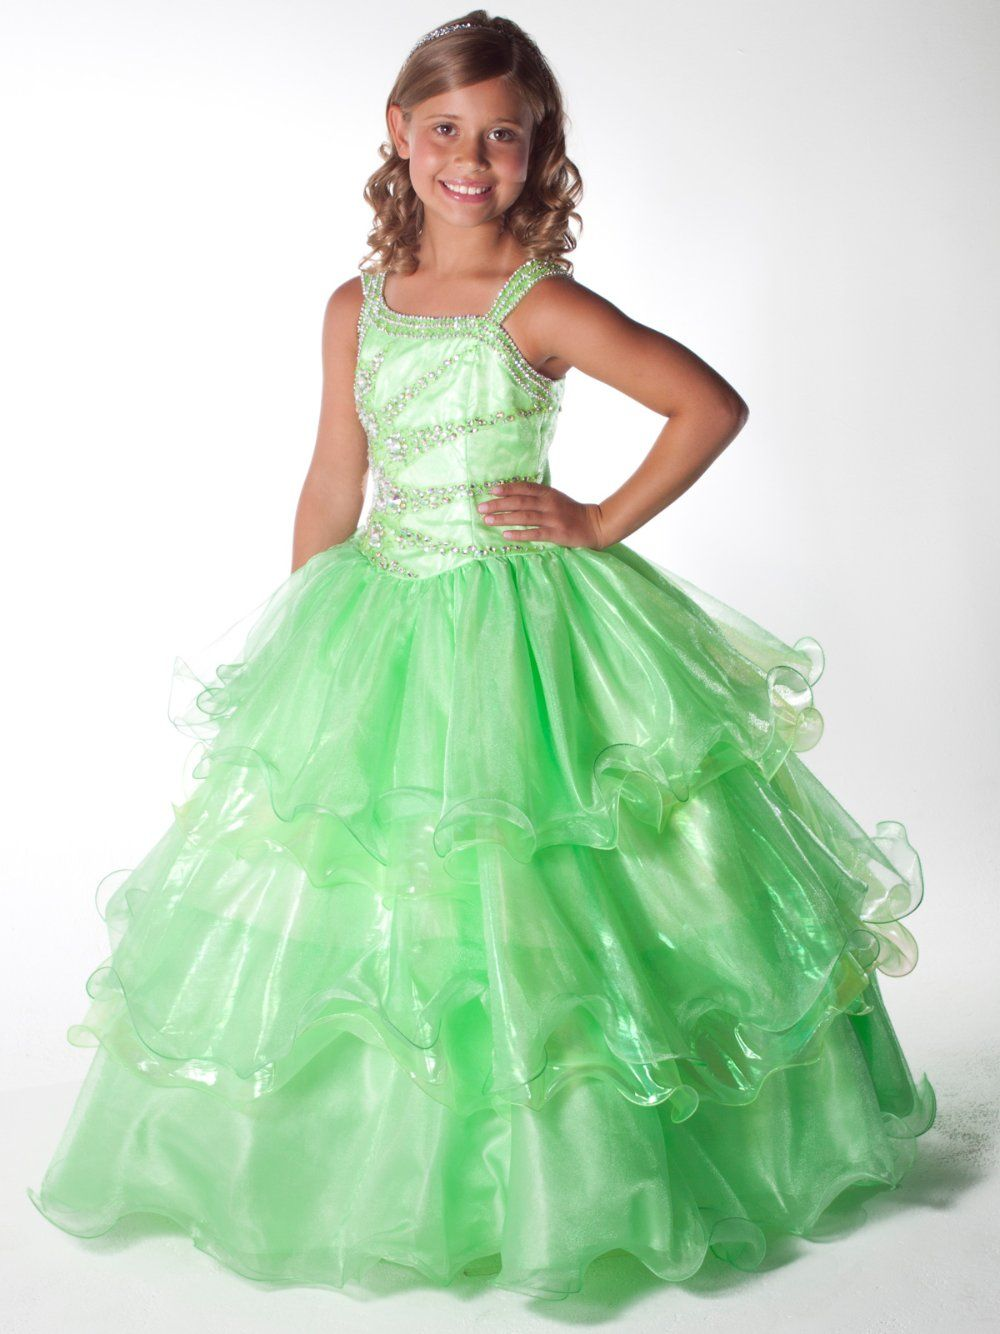 2013 Cute yellow-green Unique Layered Skirt Sugar Pageant Dress Gown Custom  Flower Girl Dresses